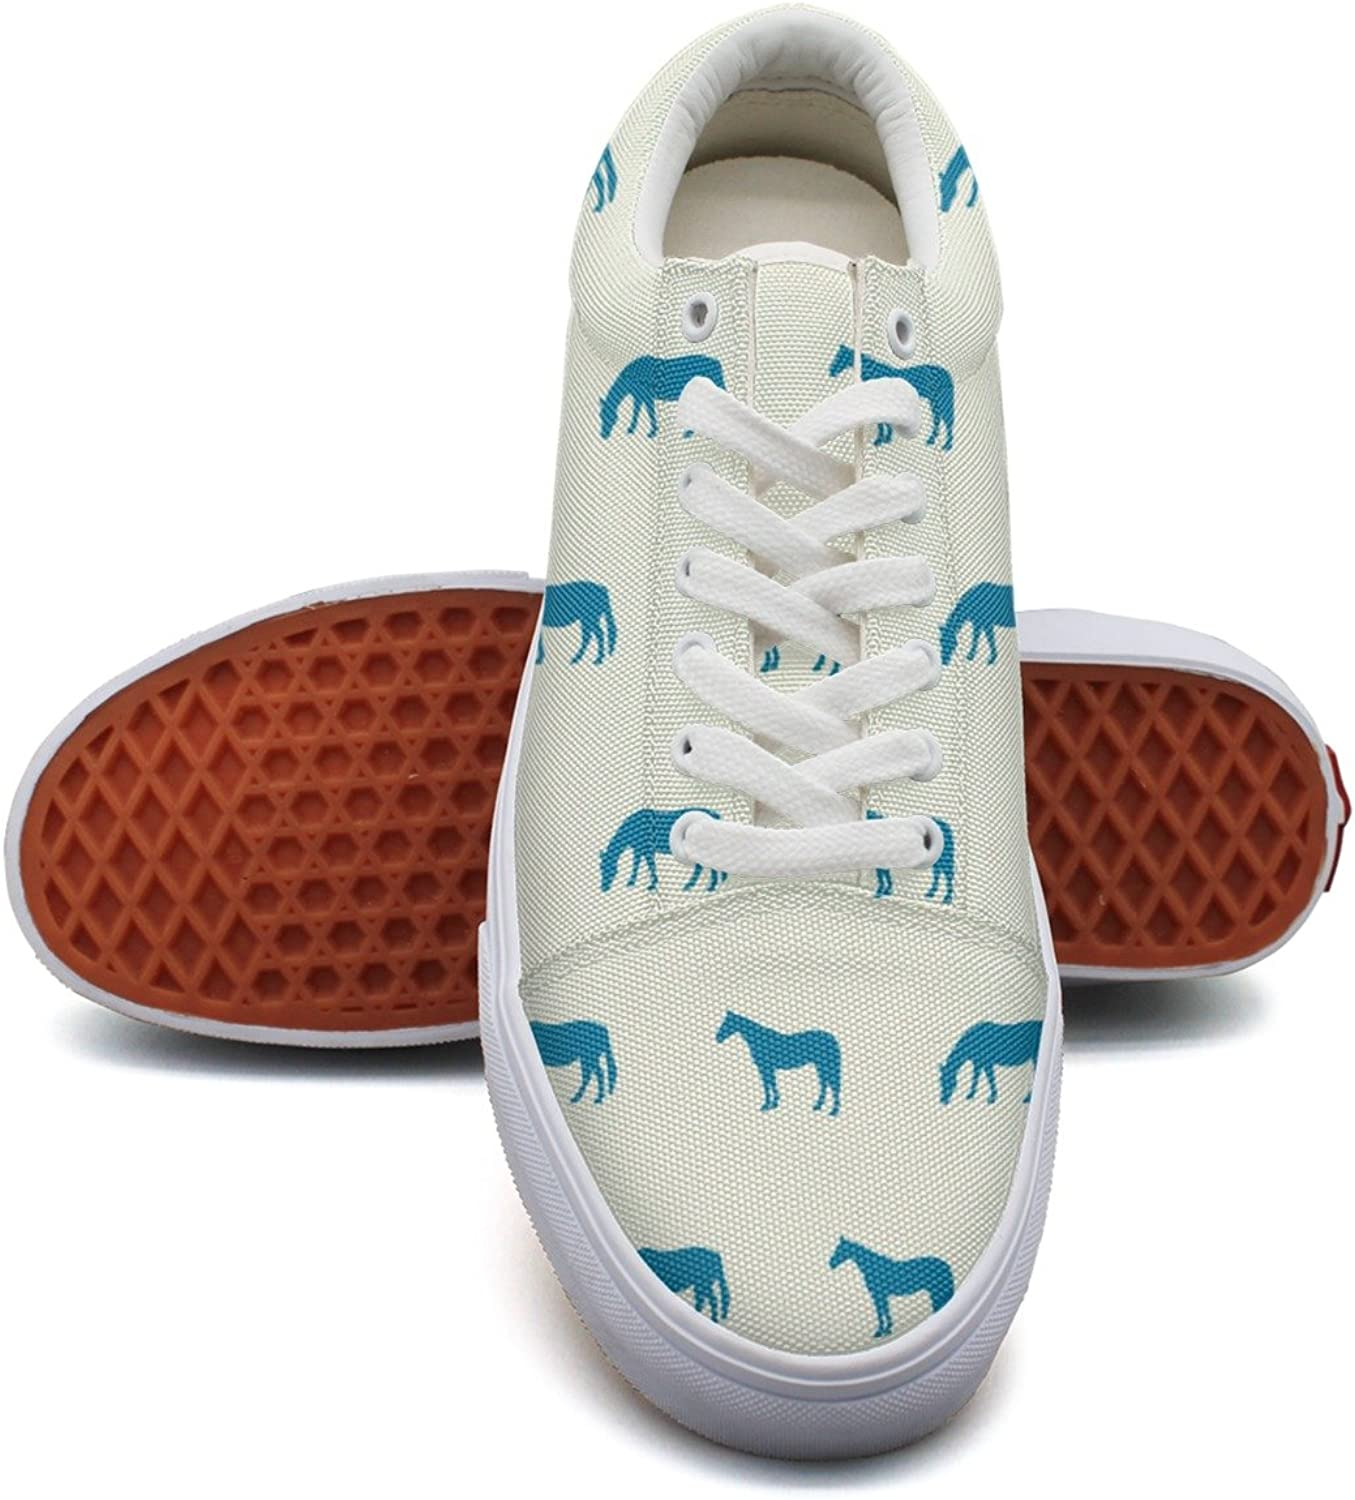 Abstract Horse Silhouette Women's Casual Sneakers Flat Slip On Fashion Comfortable